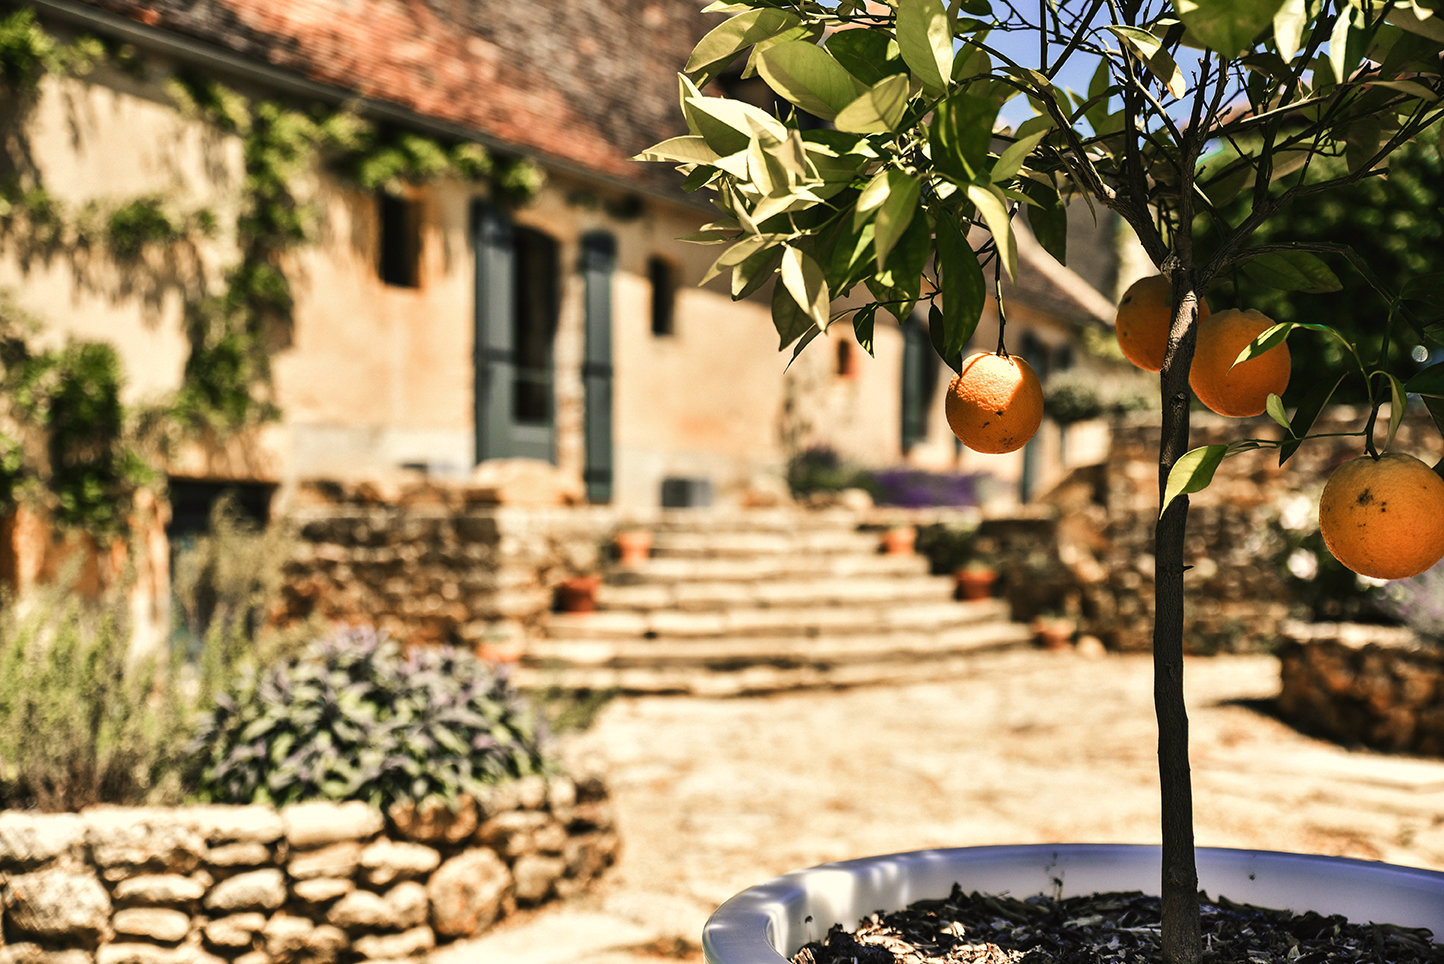 Looking past an orange tree in a white pot to the well-worn steps leading up to Le Mas, a characterful holiday home in the Dordogne, France